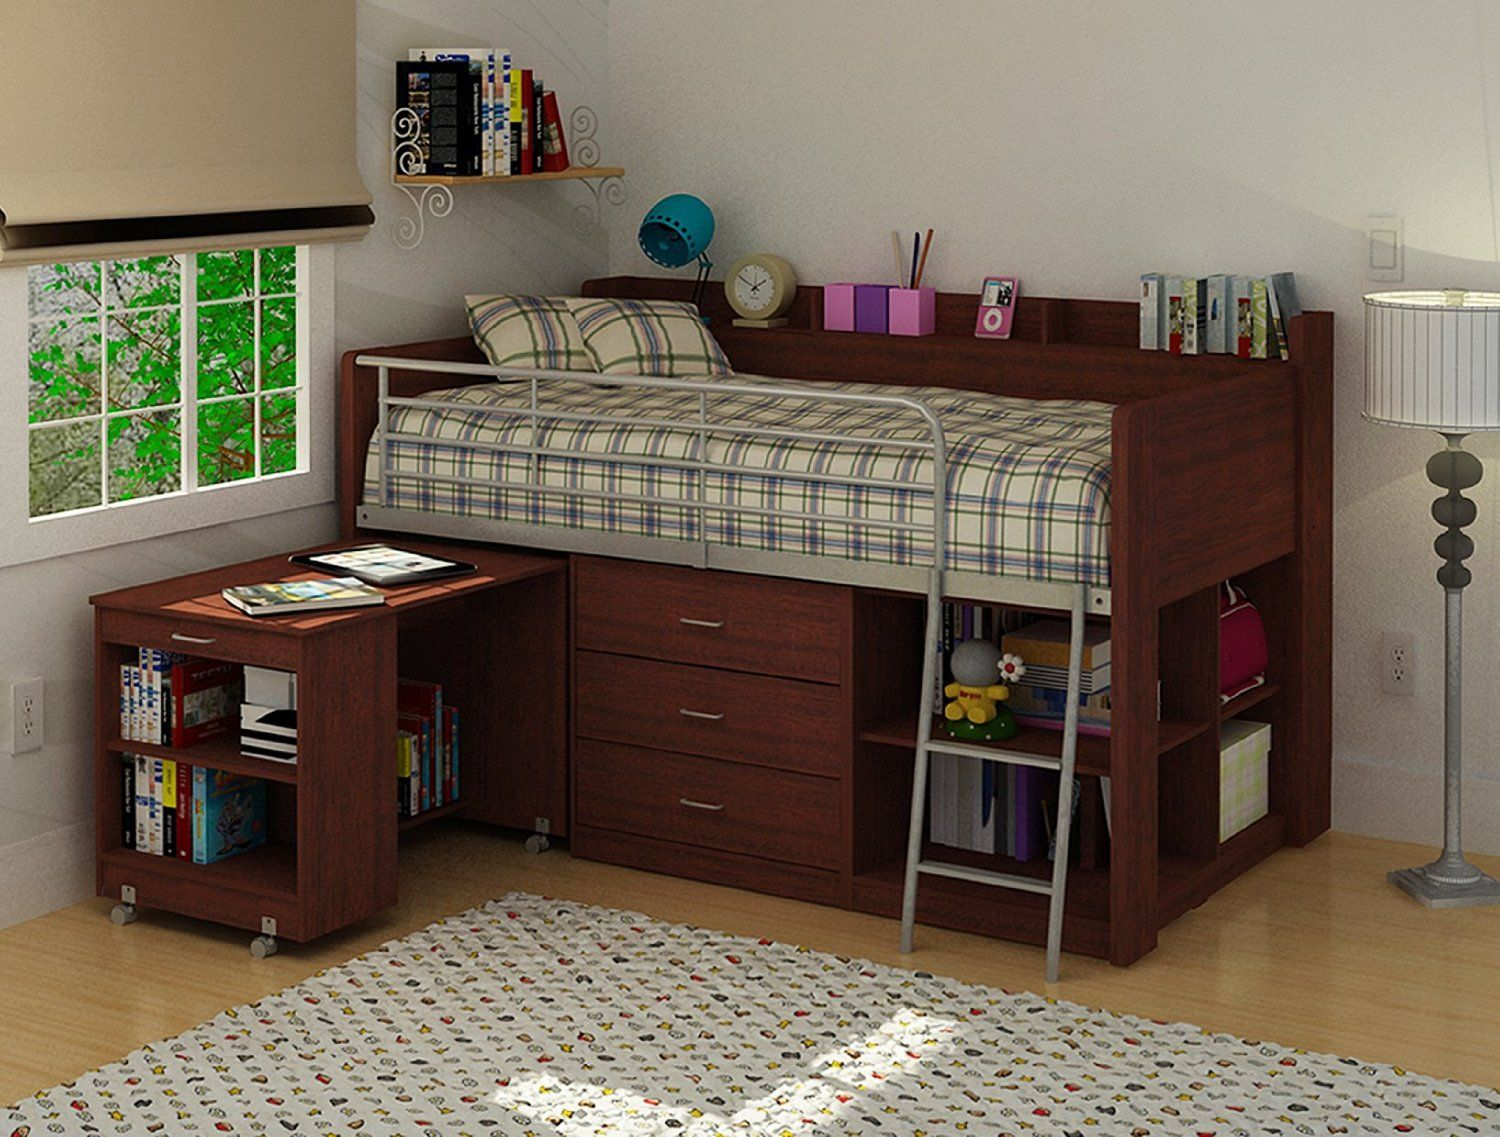 Portrayal Of Wooden Loft Bed With Desk Most Recommended Space